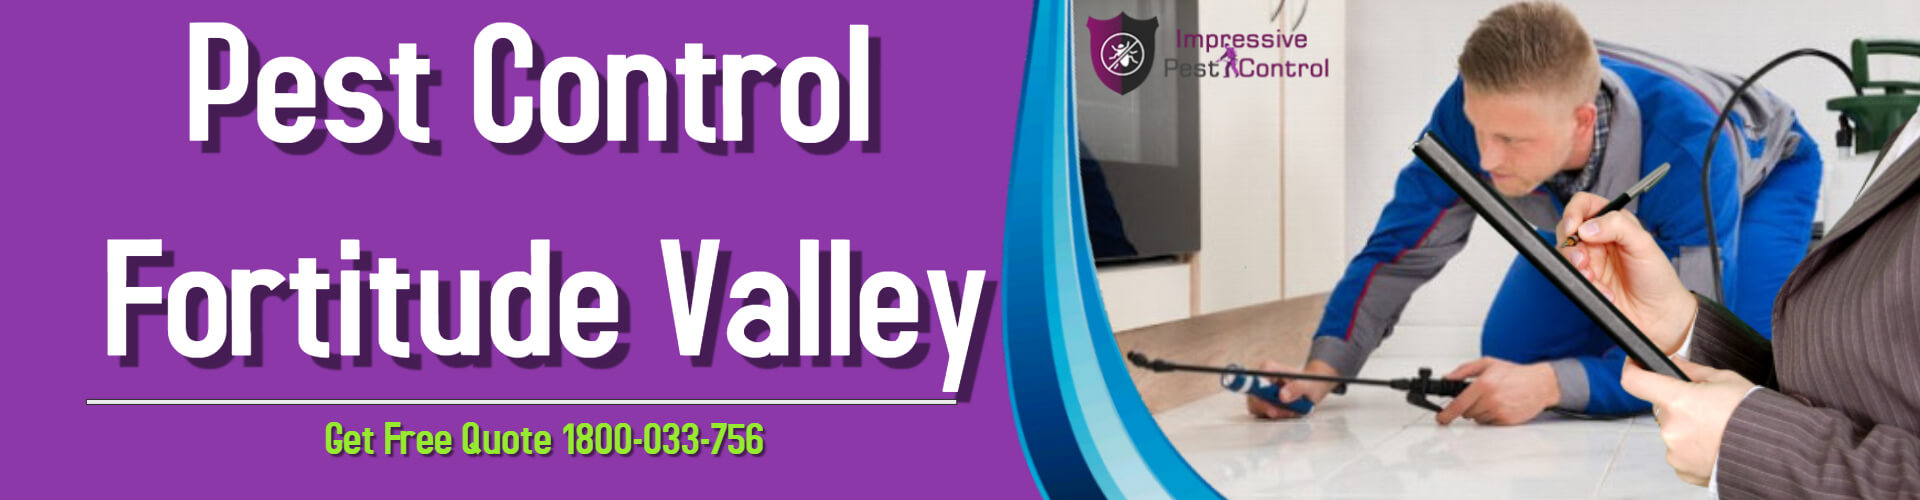 Pest Control Fortitude Valley